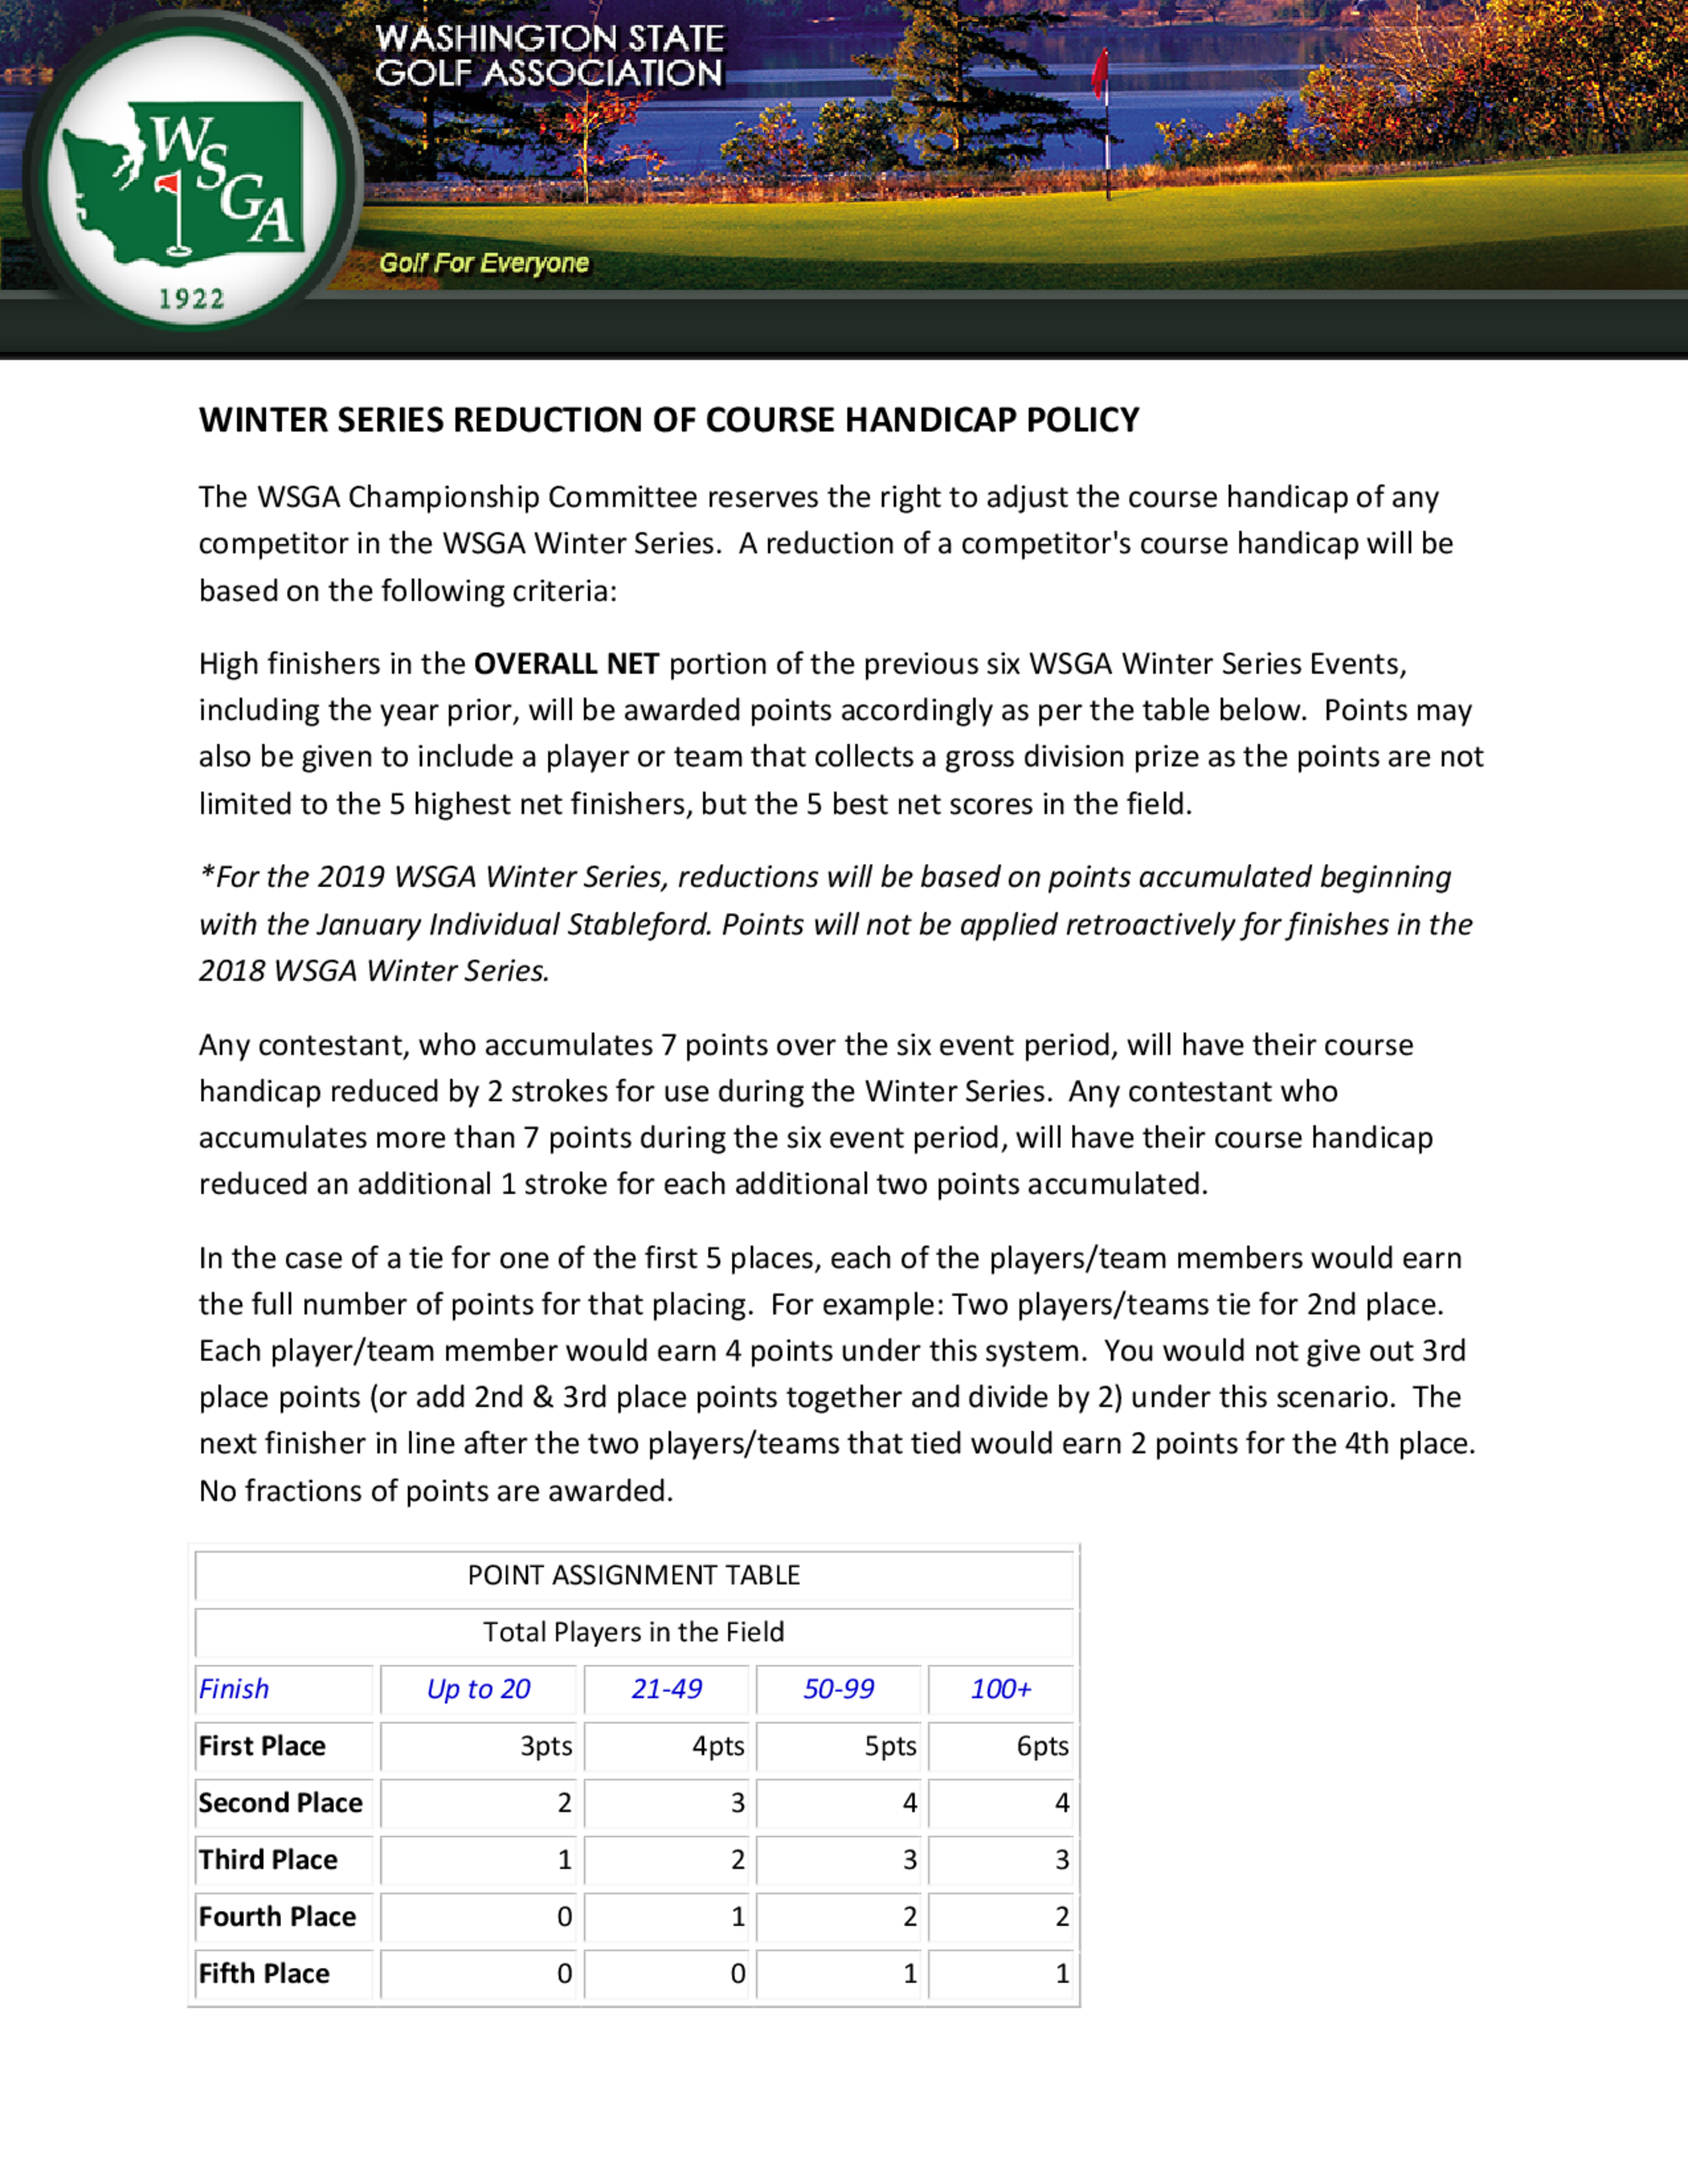 Wsga reduction of course handicap policy  winter series  1